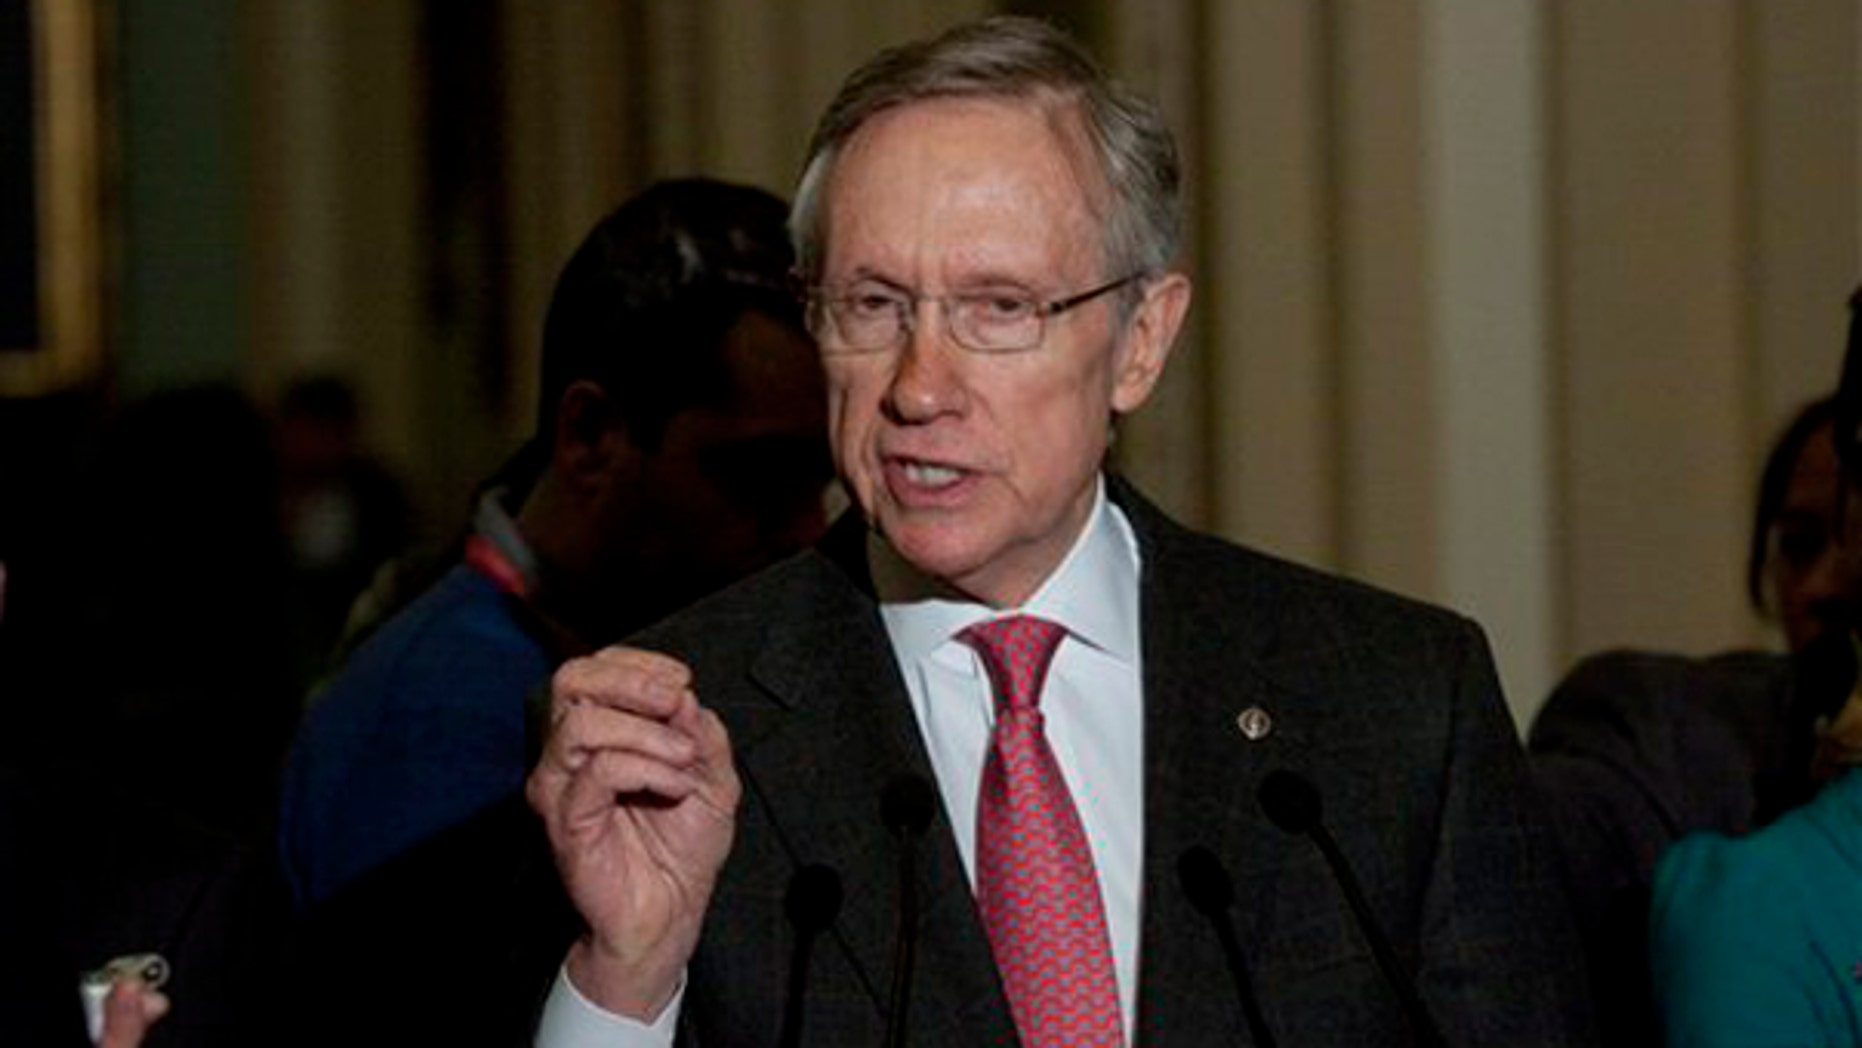 Senate Majority Leader Harry Reid of Nev., speaks to reporters after the weekly caucus luncheons on Capitol Hill in Washington, Tuesday, March 2, 2010. (AP)